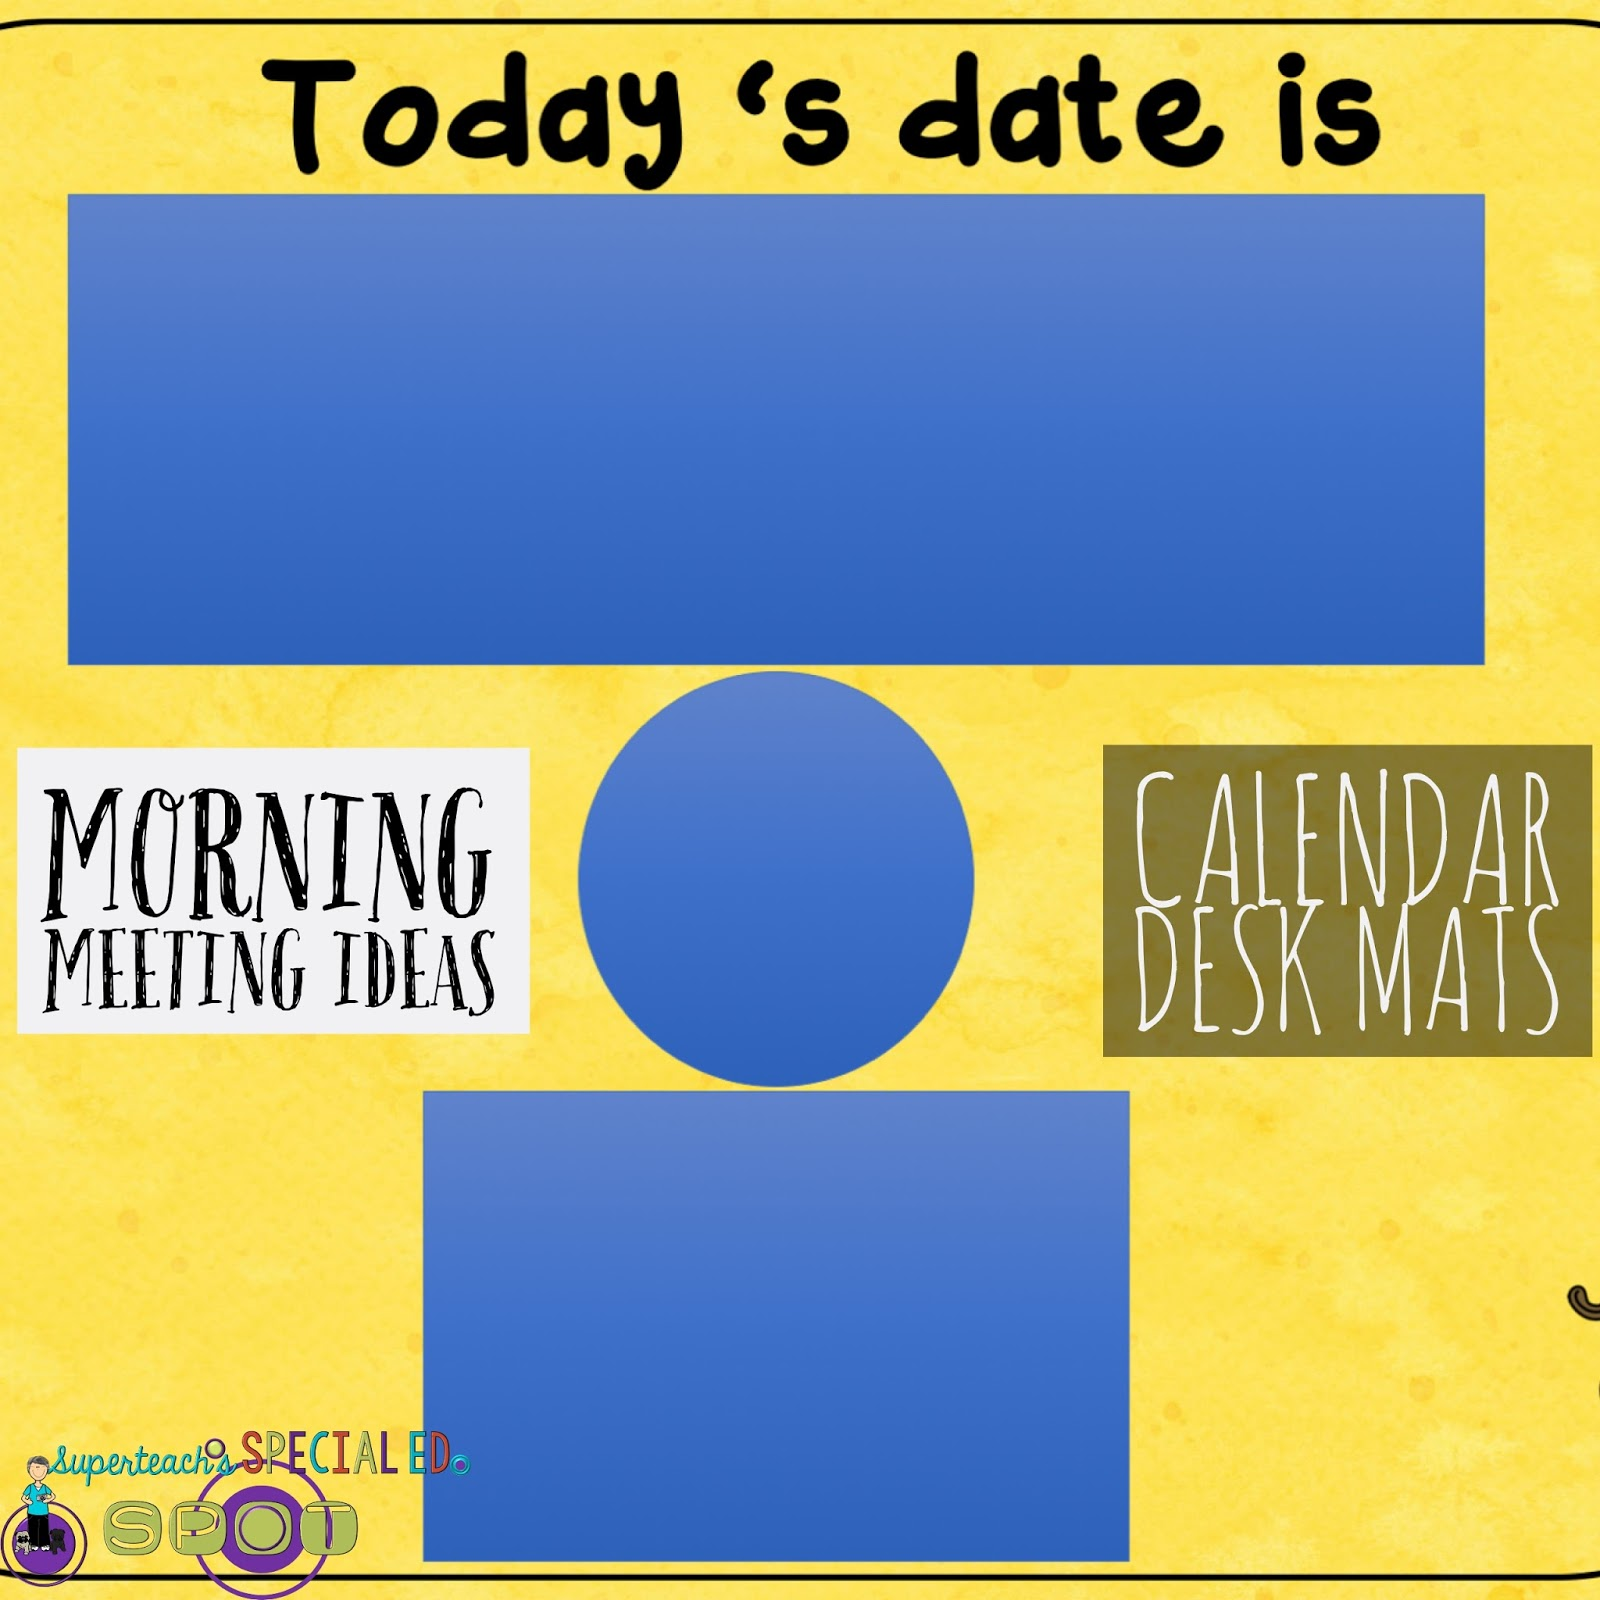 Jazz Up Your Morning Meetings With Calendar